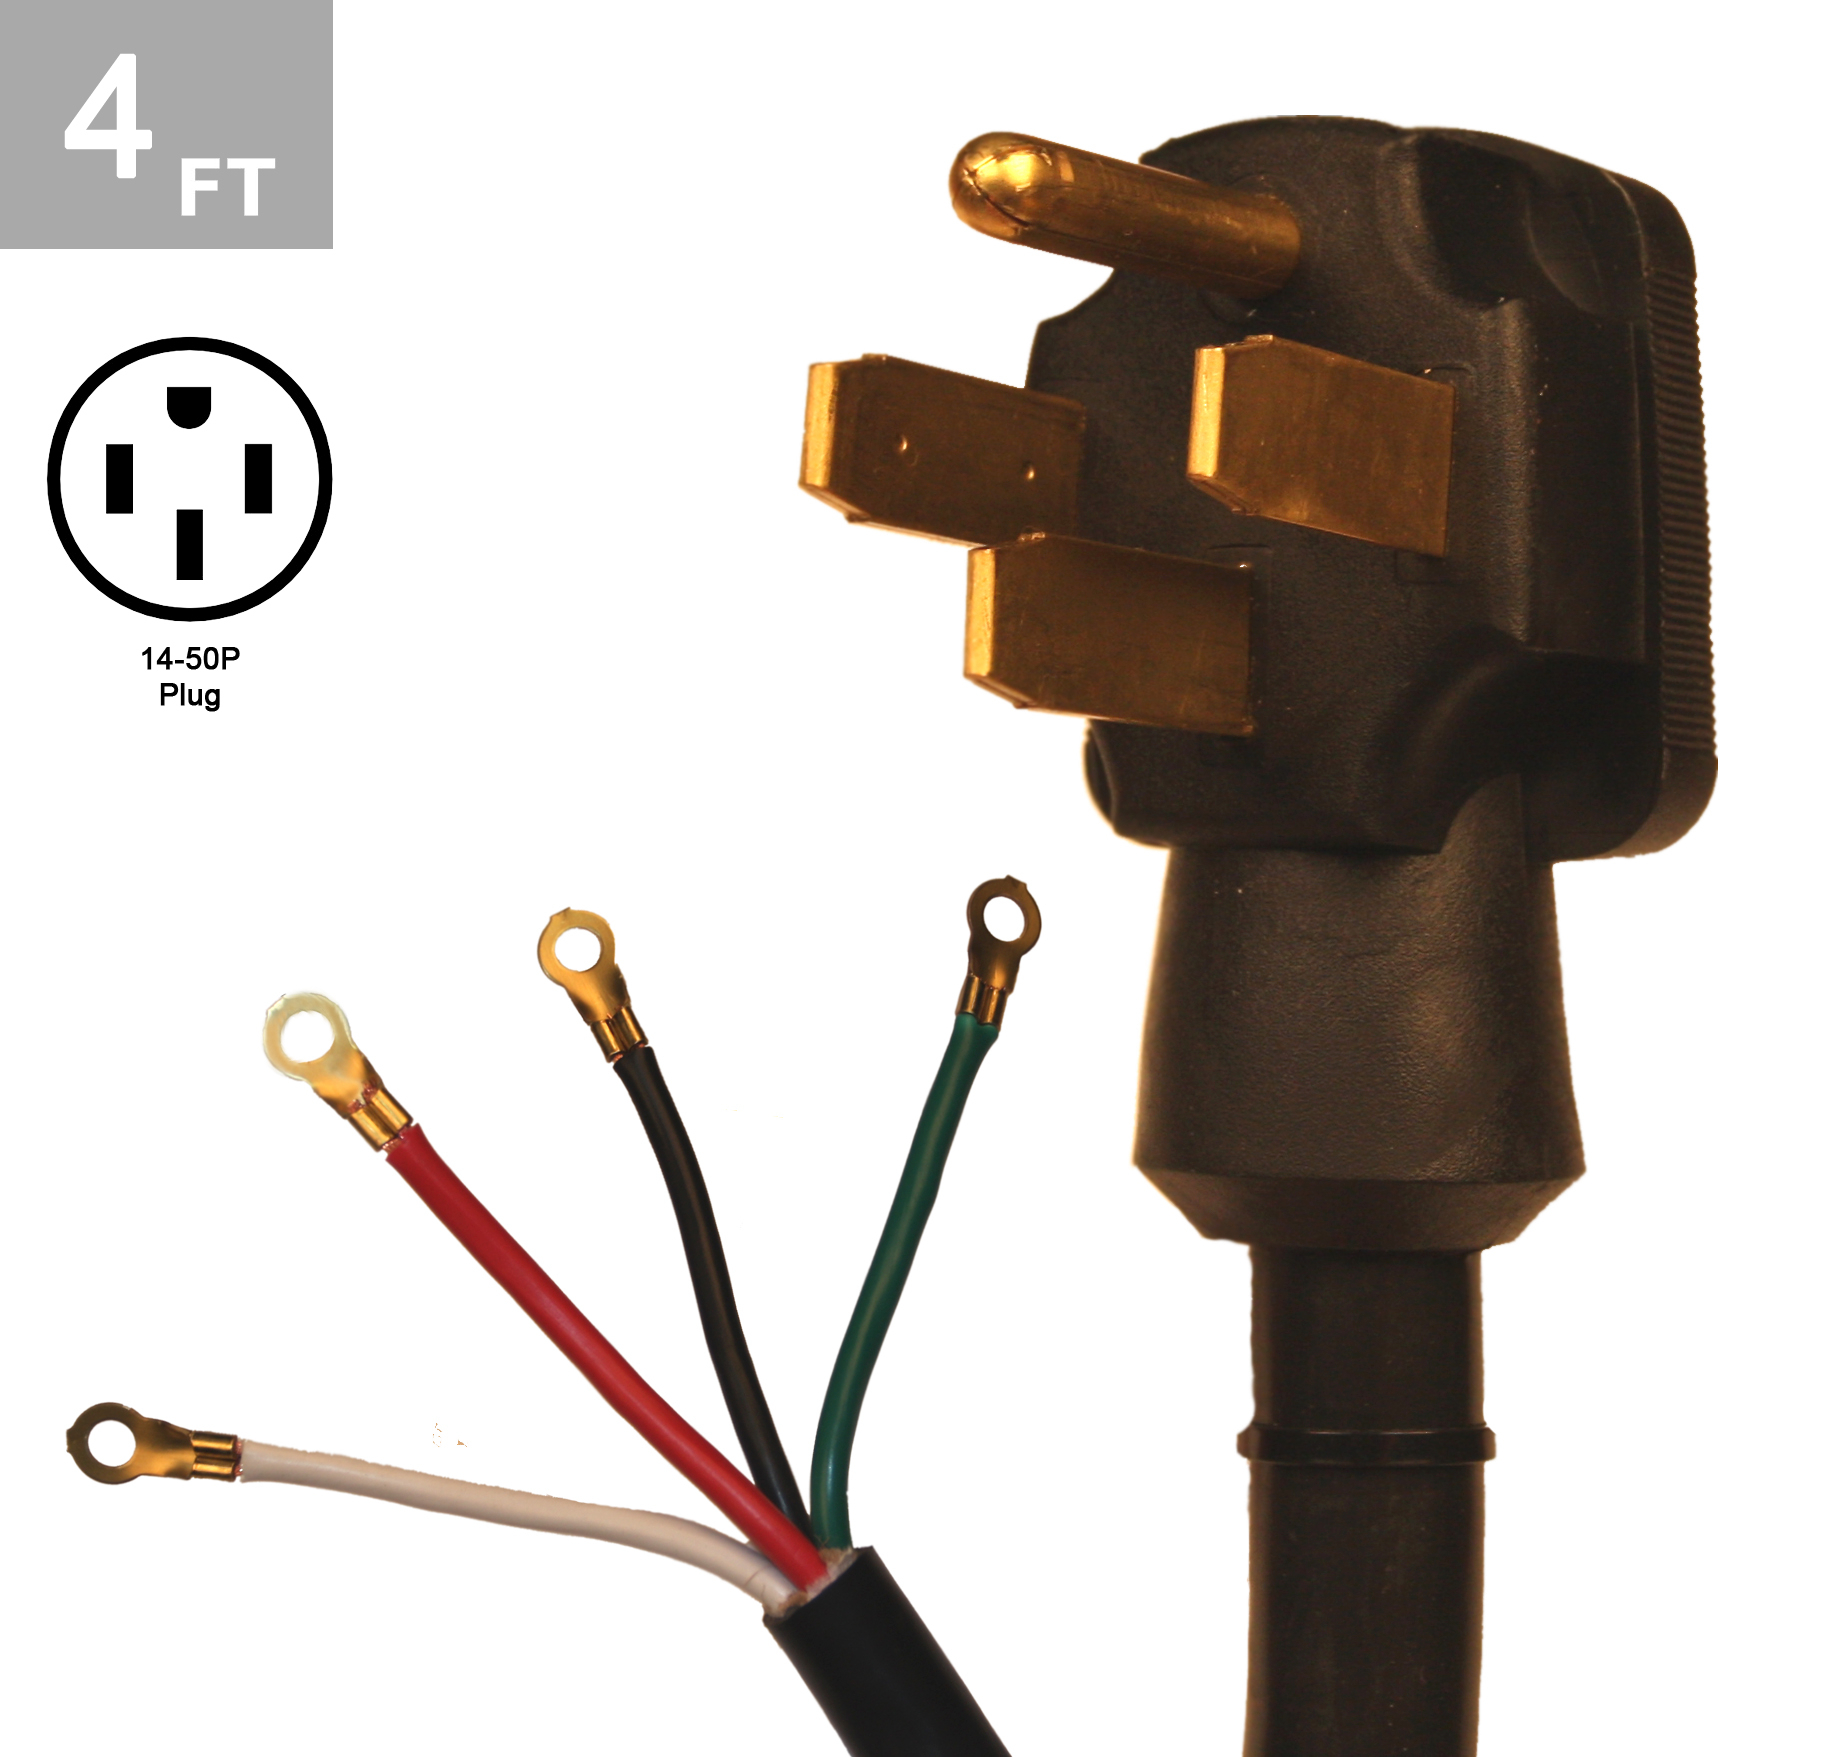 Wiring A Dryer Plug With 10 2 - Wiring Circuit •